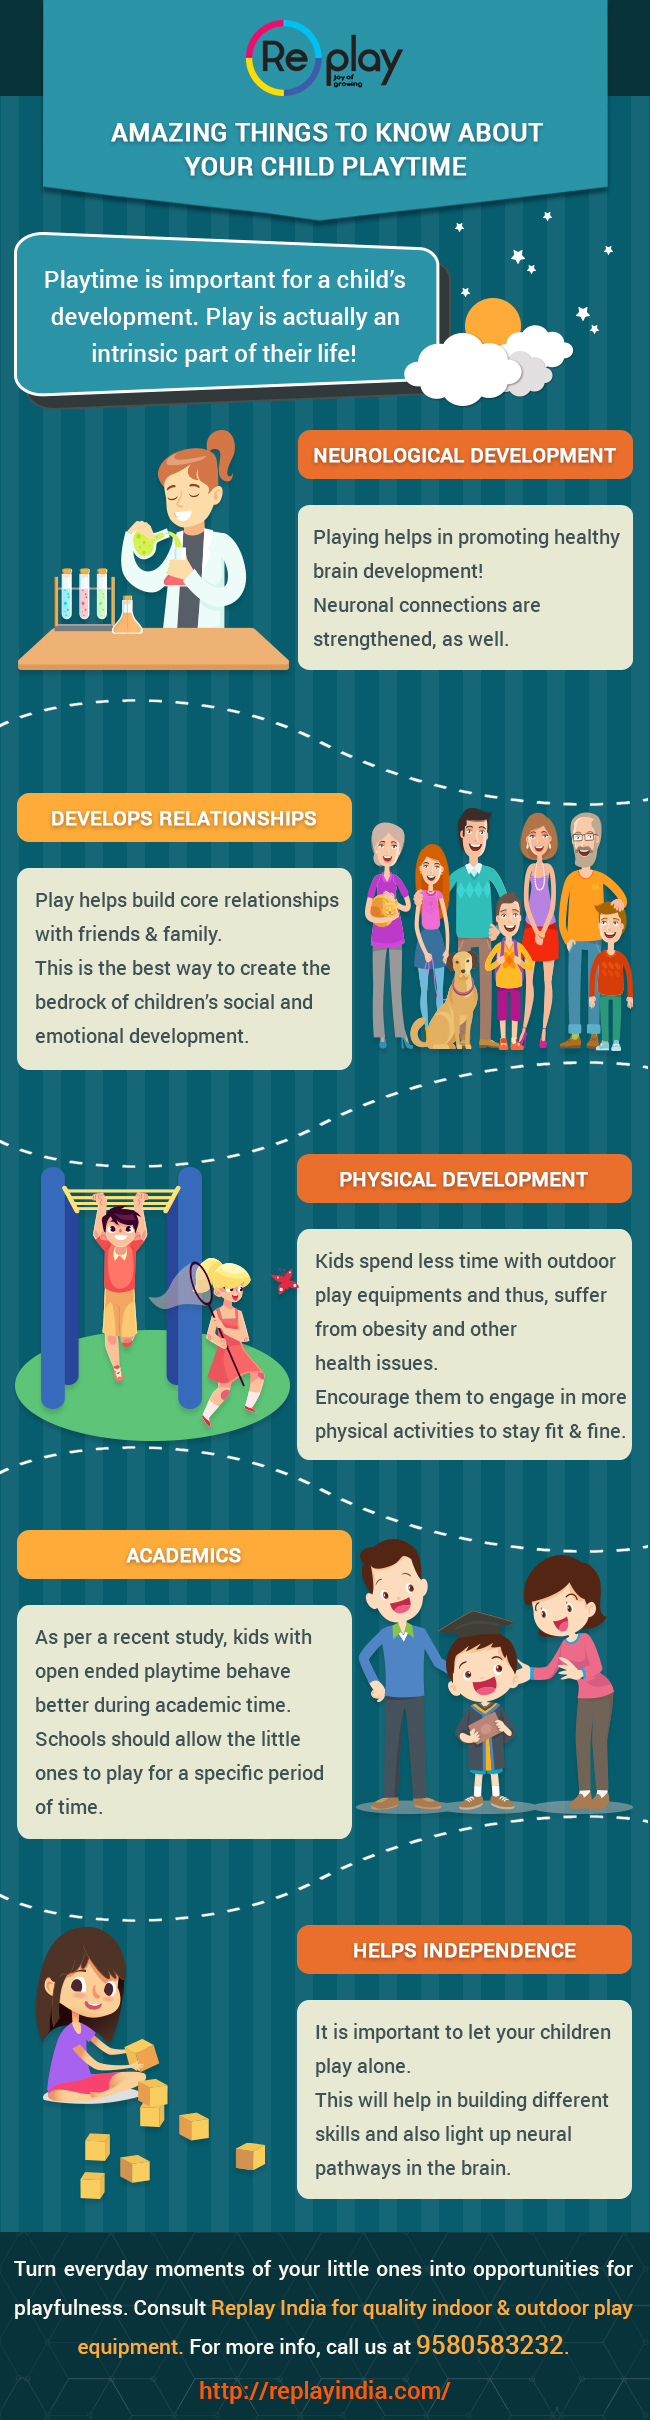 Amazing Things to Know About Your Child Playtime